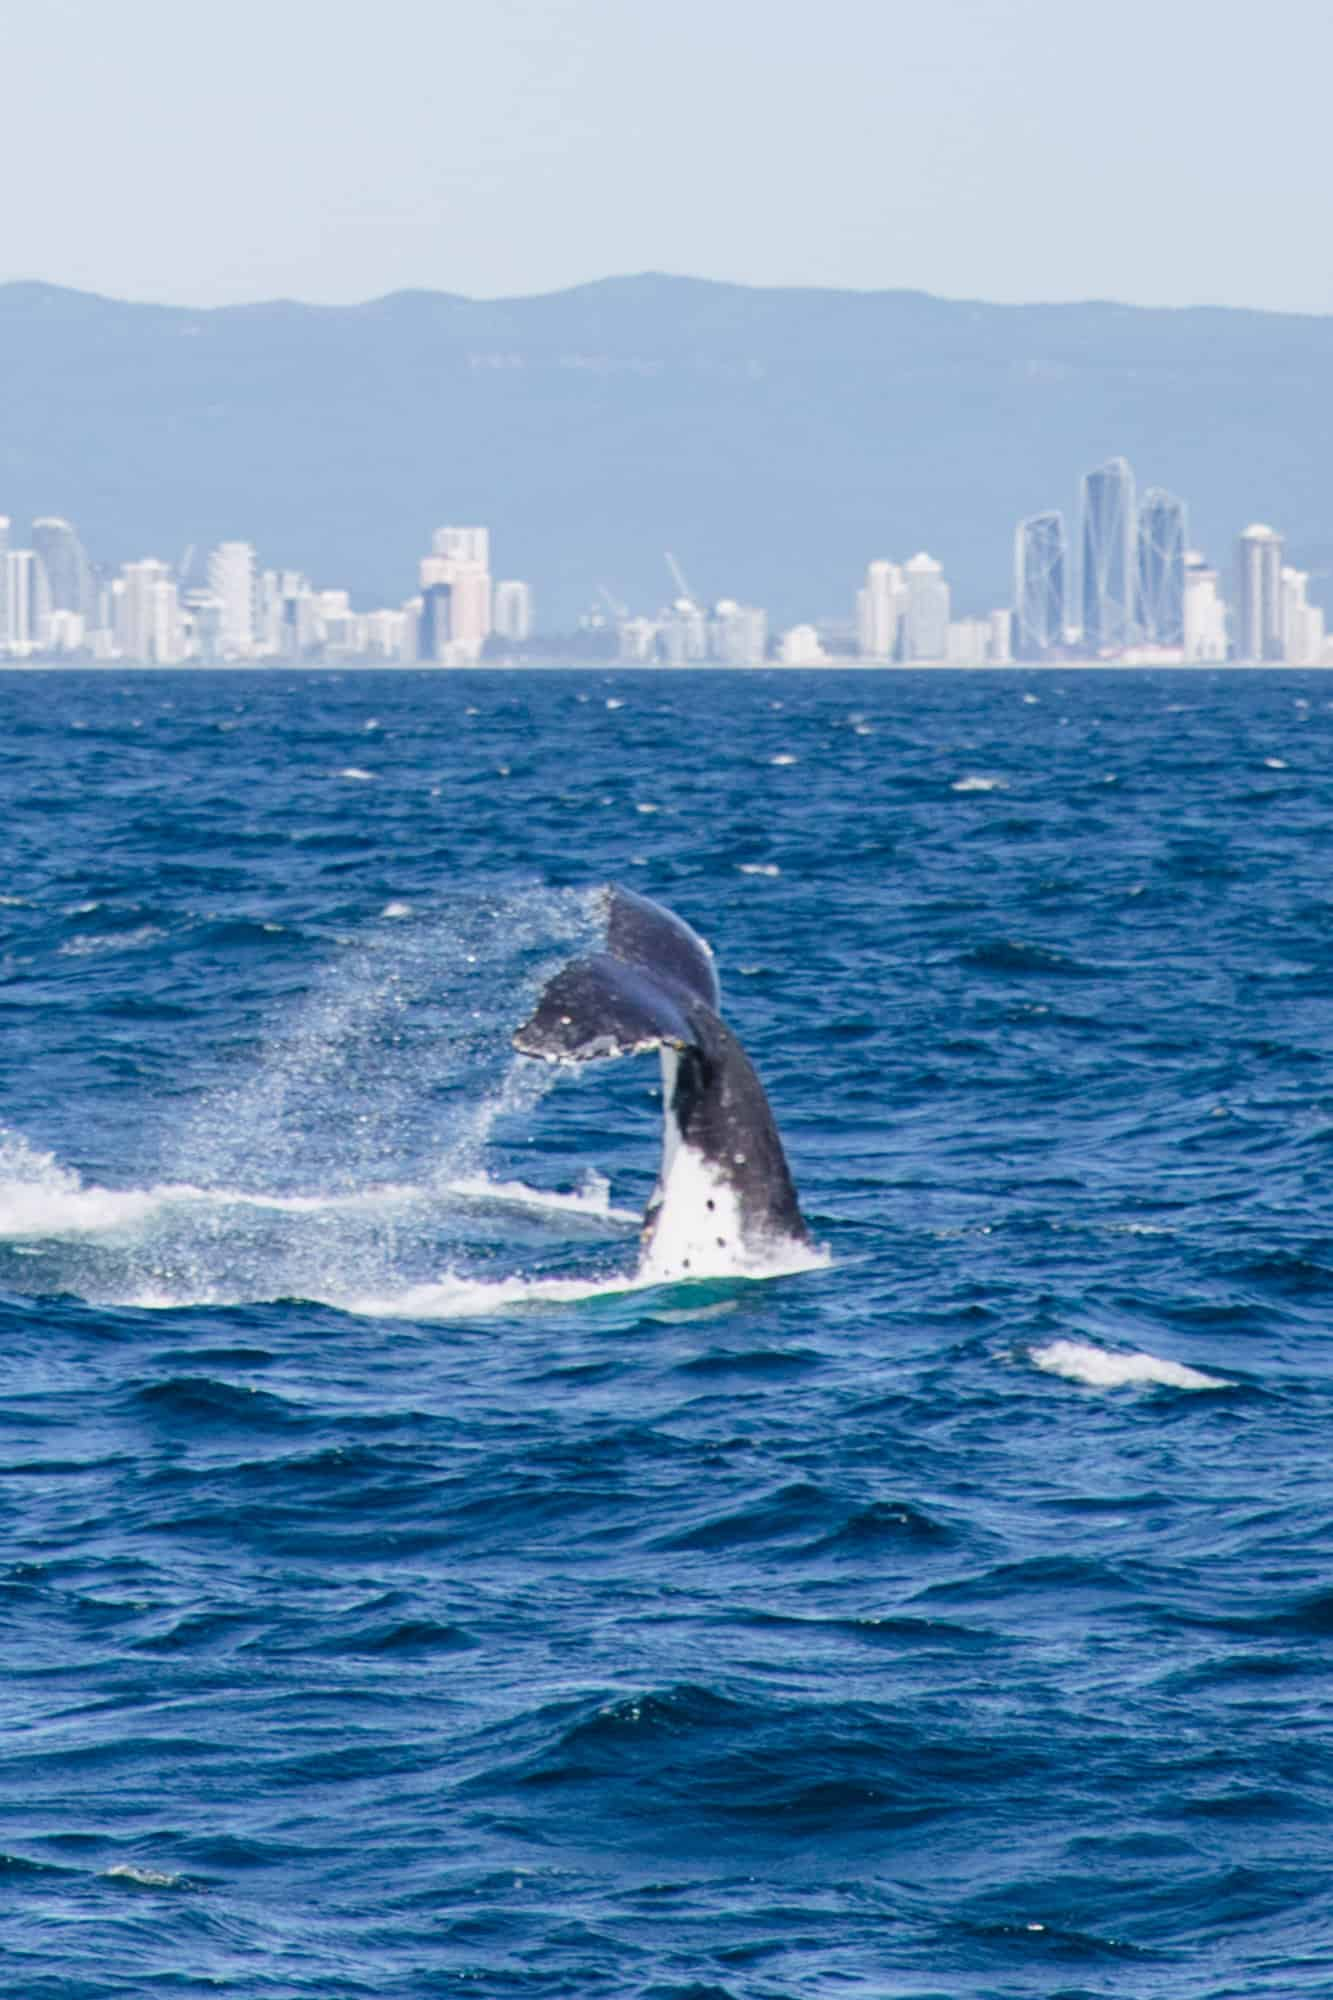 whale watching gold coast, gold coast whale watching, whale season gold coast, whale watching season gold coast, whales watching gold coast, gold coast whale watching season